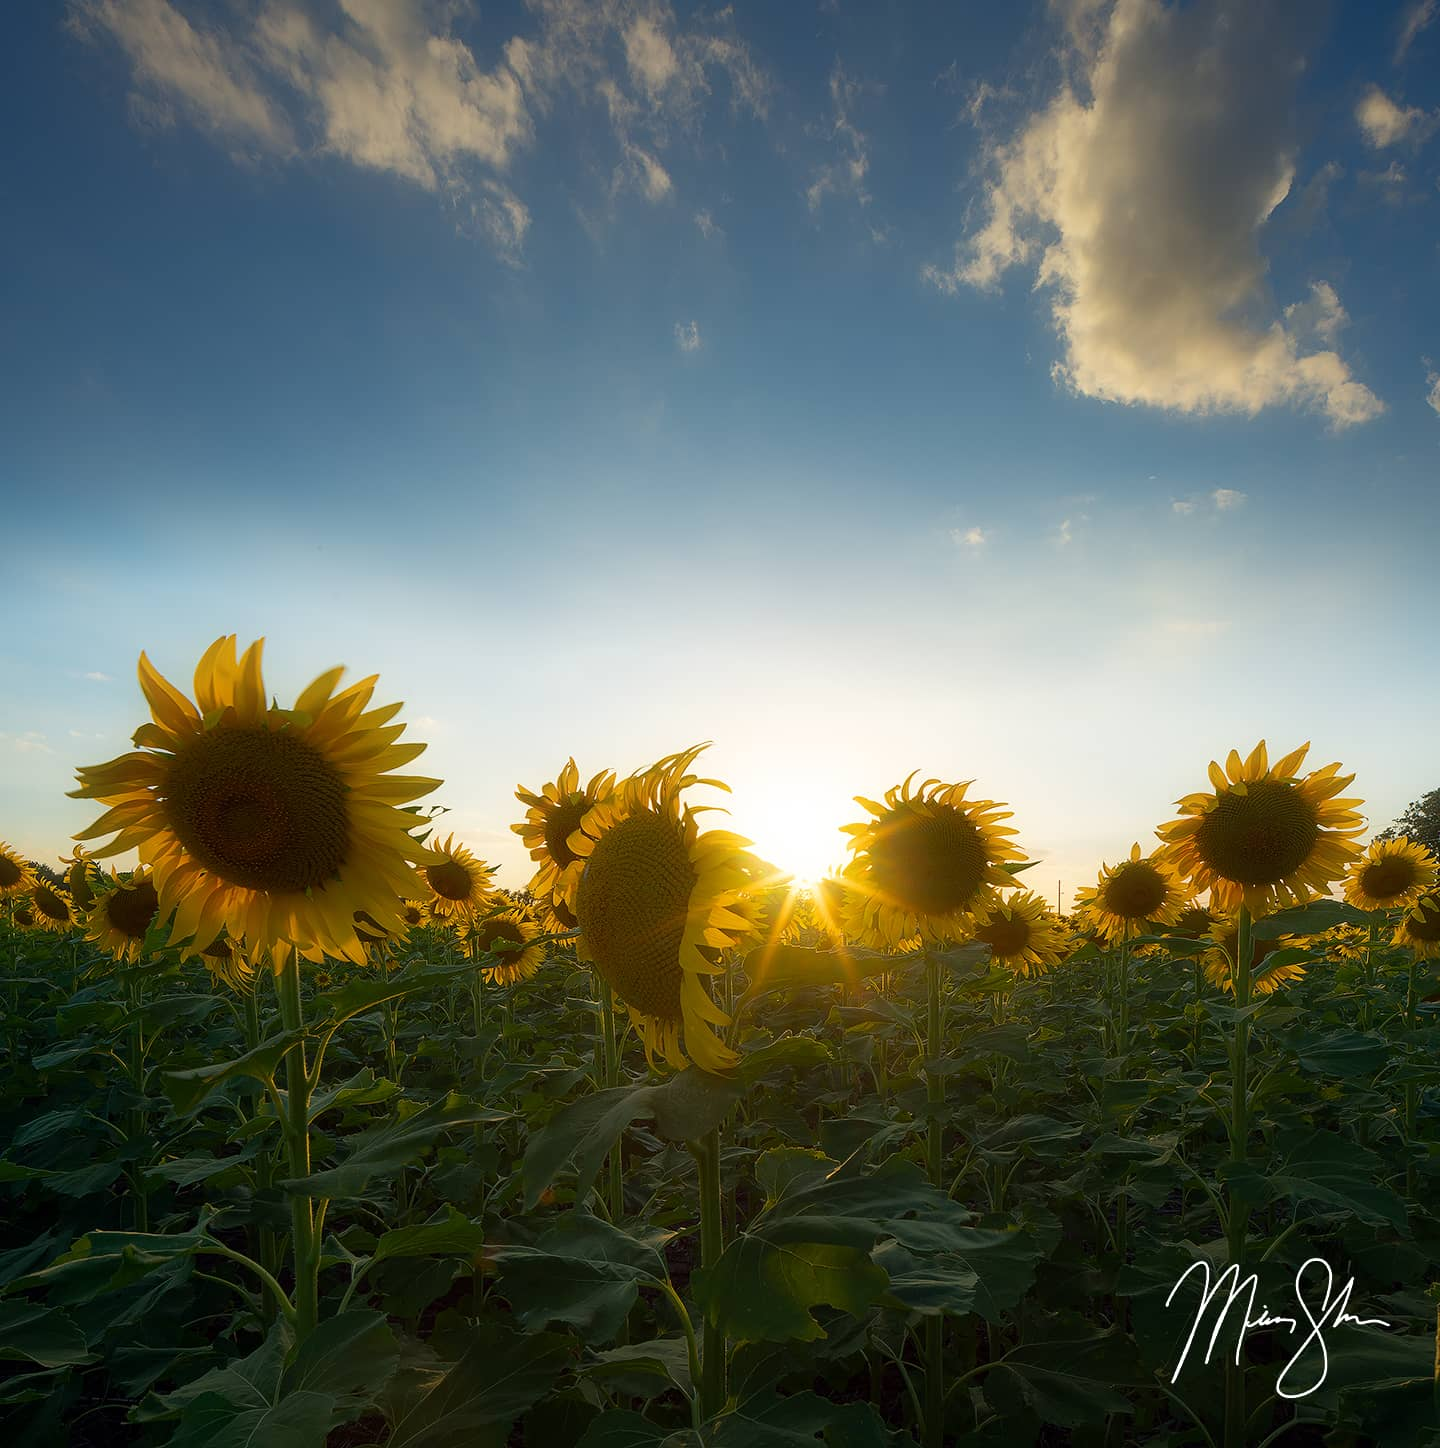 Open edition fine art print of Sunflowers and Sky from Mickey Shannon Photography. Location: Haysville, KS